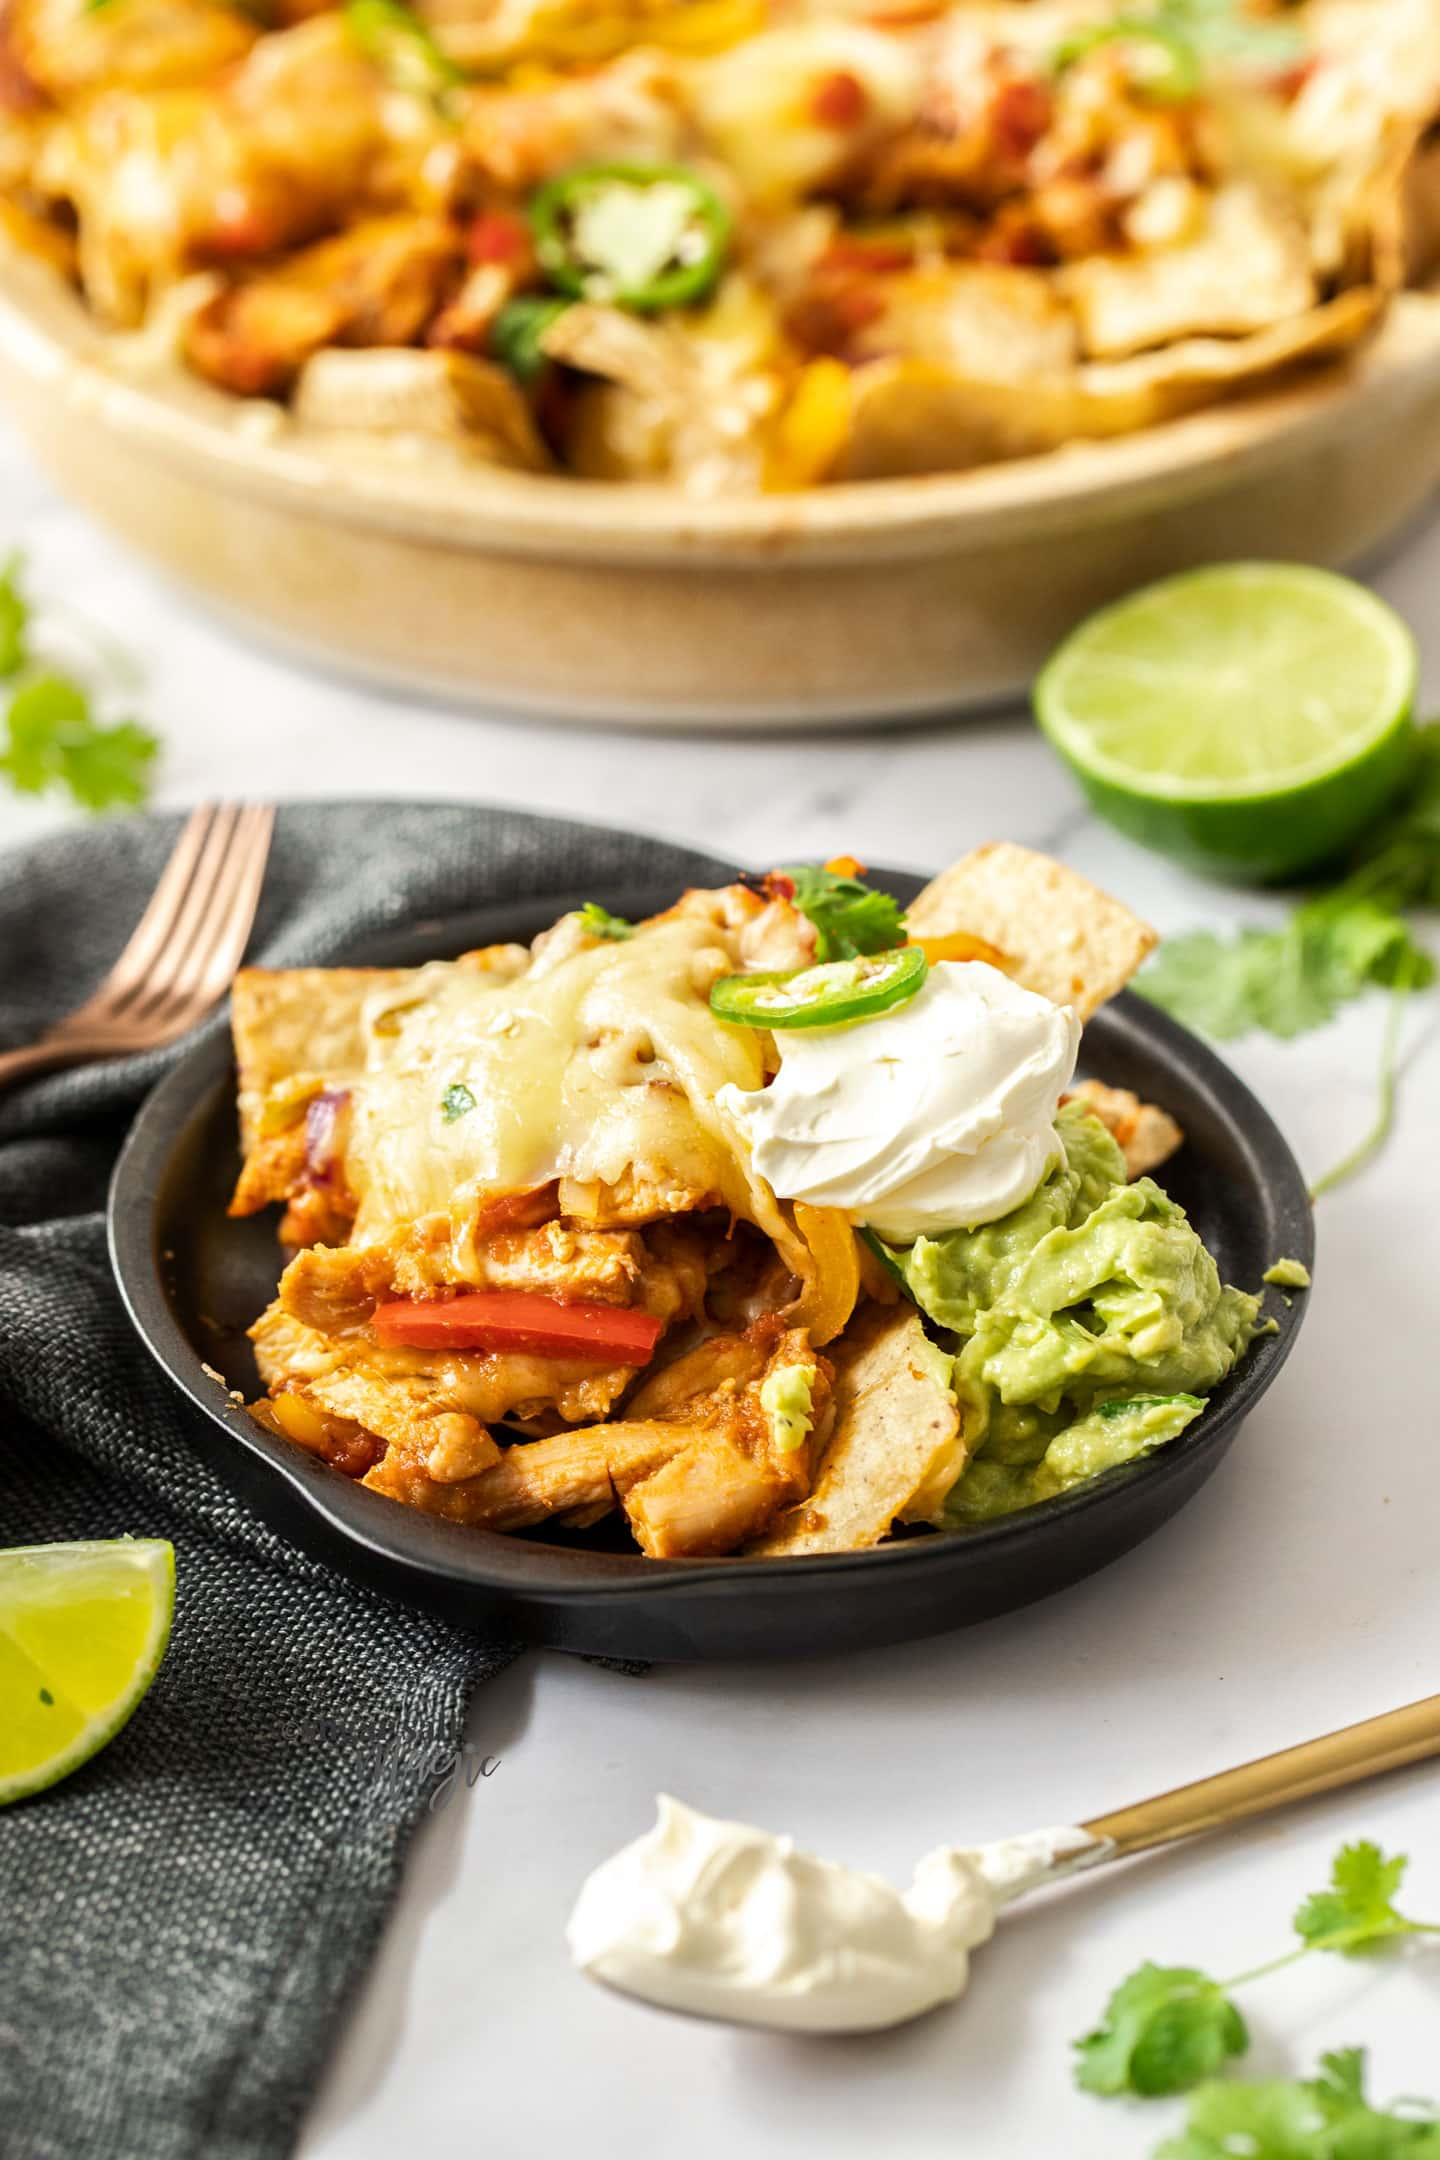 A black plate with nahcos, chicken and guacaomole on it